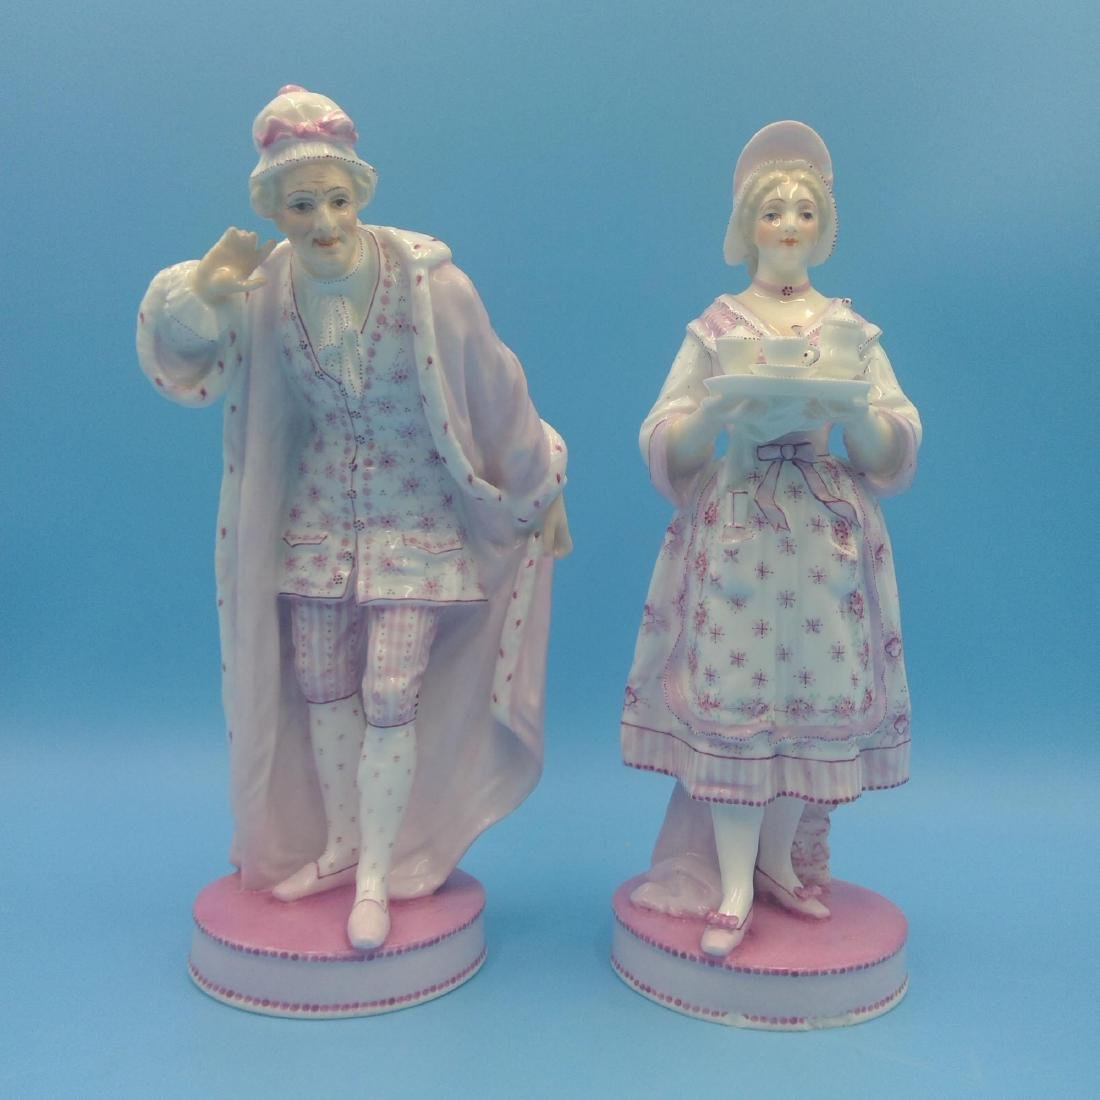 PAIR OF 19thC FRENCH VION & BAURY FIGURINES